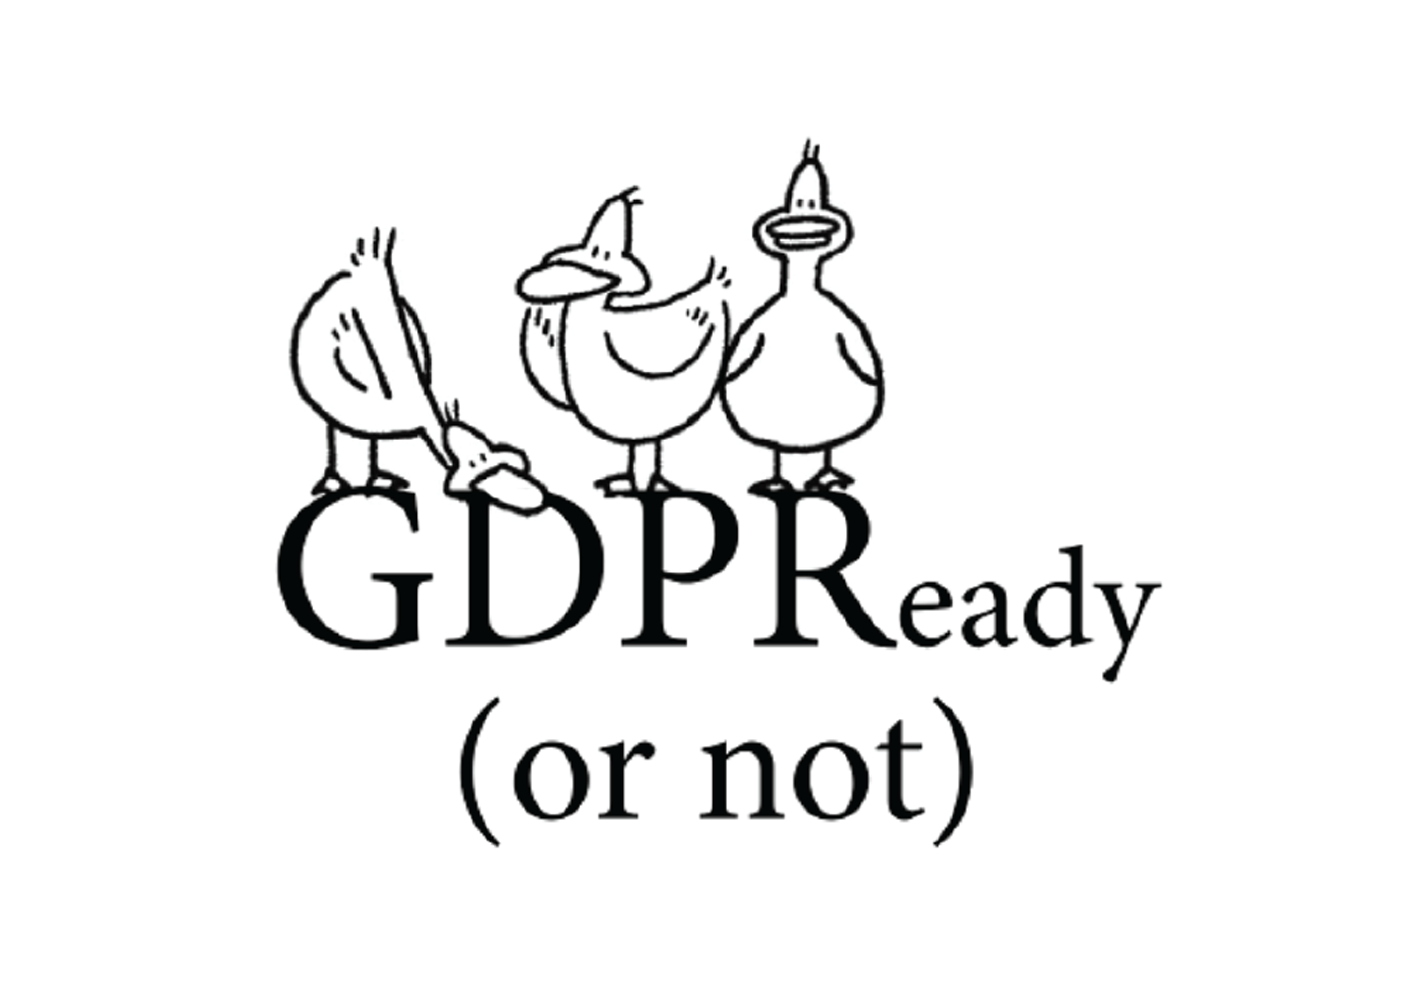 GDPR Ready or not logo